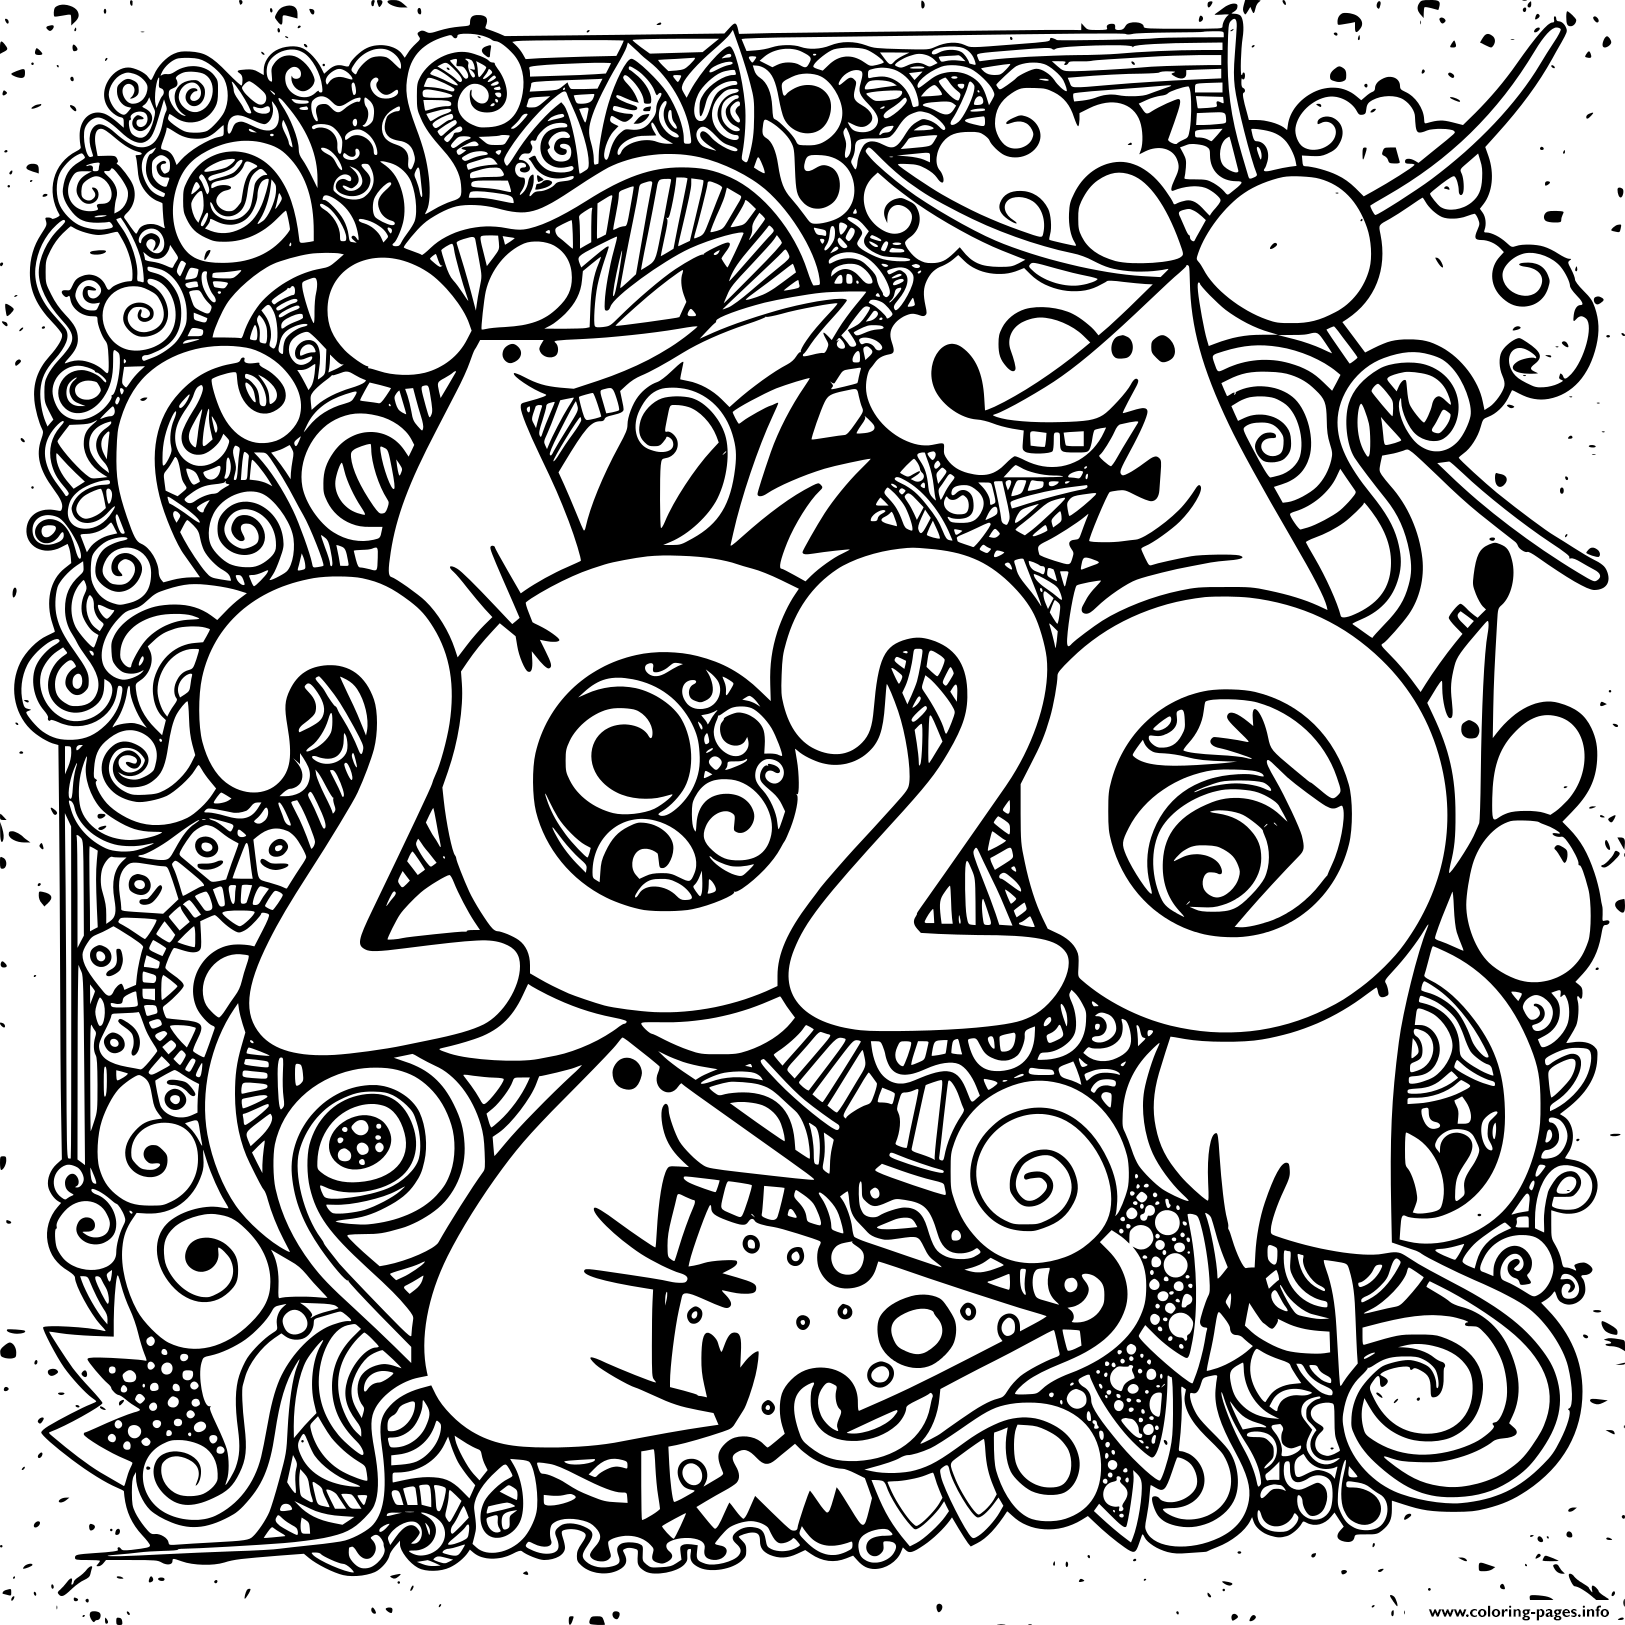 Happy New Year 2020 Coloring Pages Printable